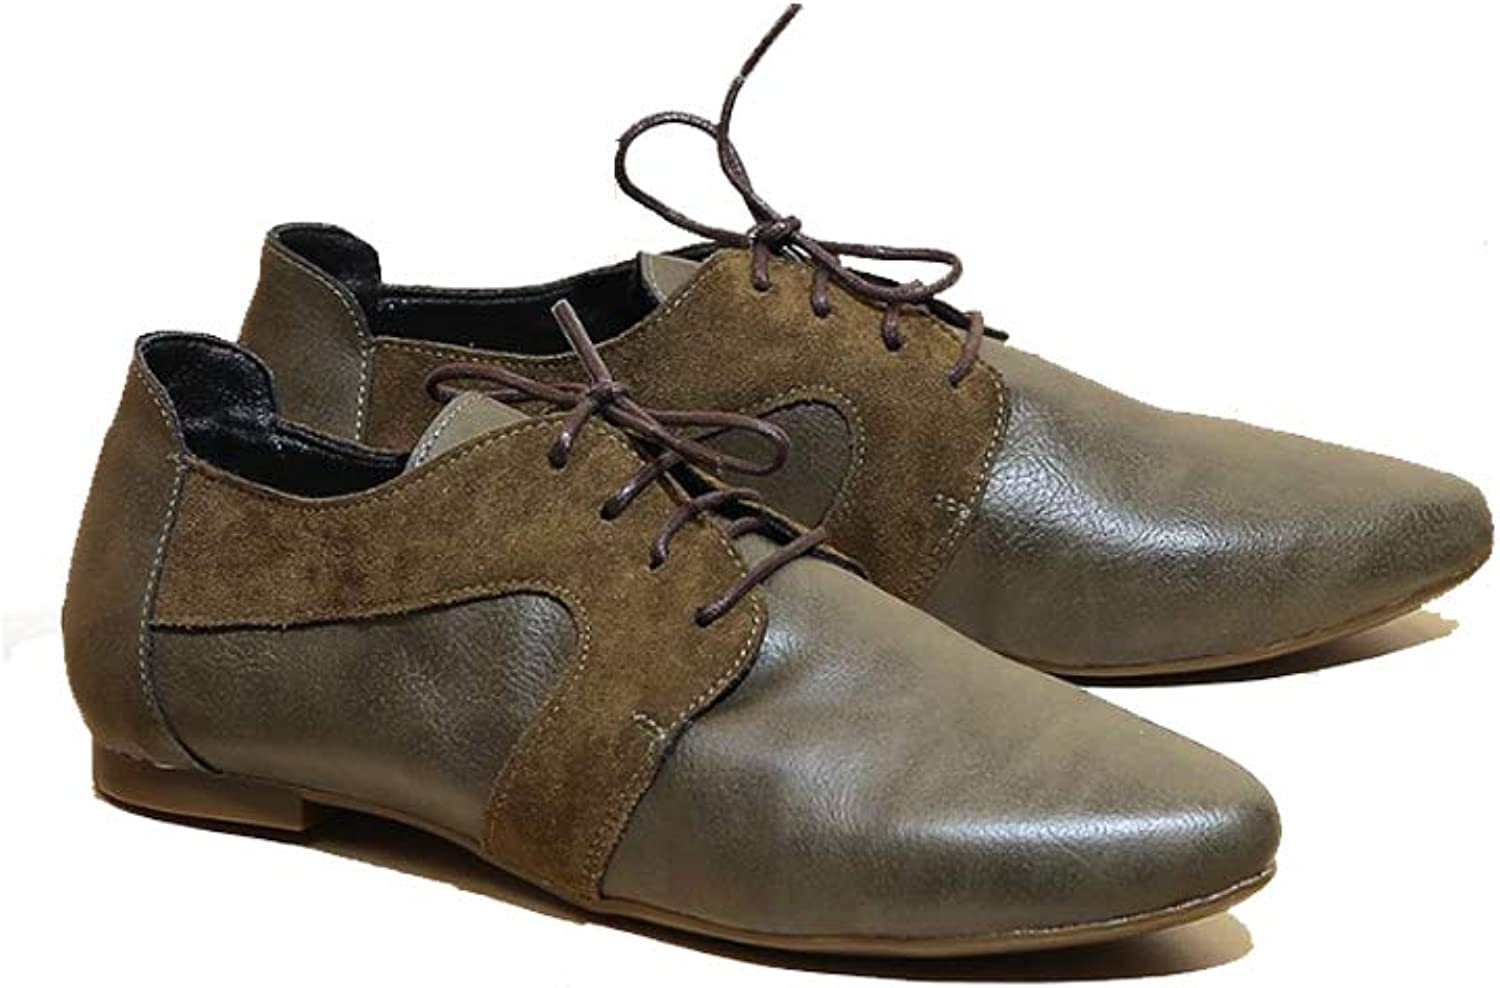 B-Unique Flat Oxfords for Women - Andora - Casual Womens Lace-up, Soft Eco-Leather Dress shoes